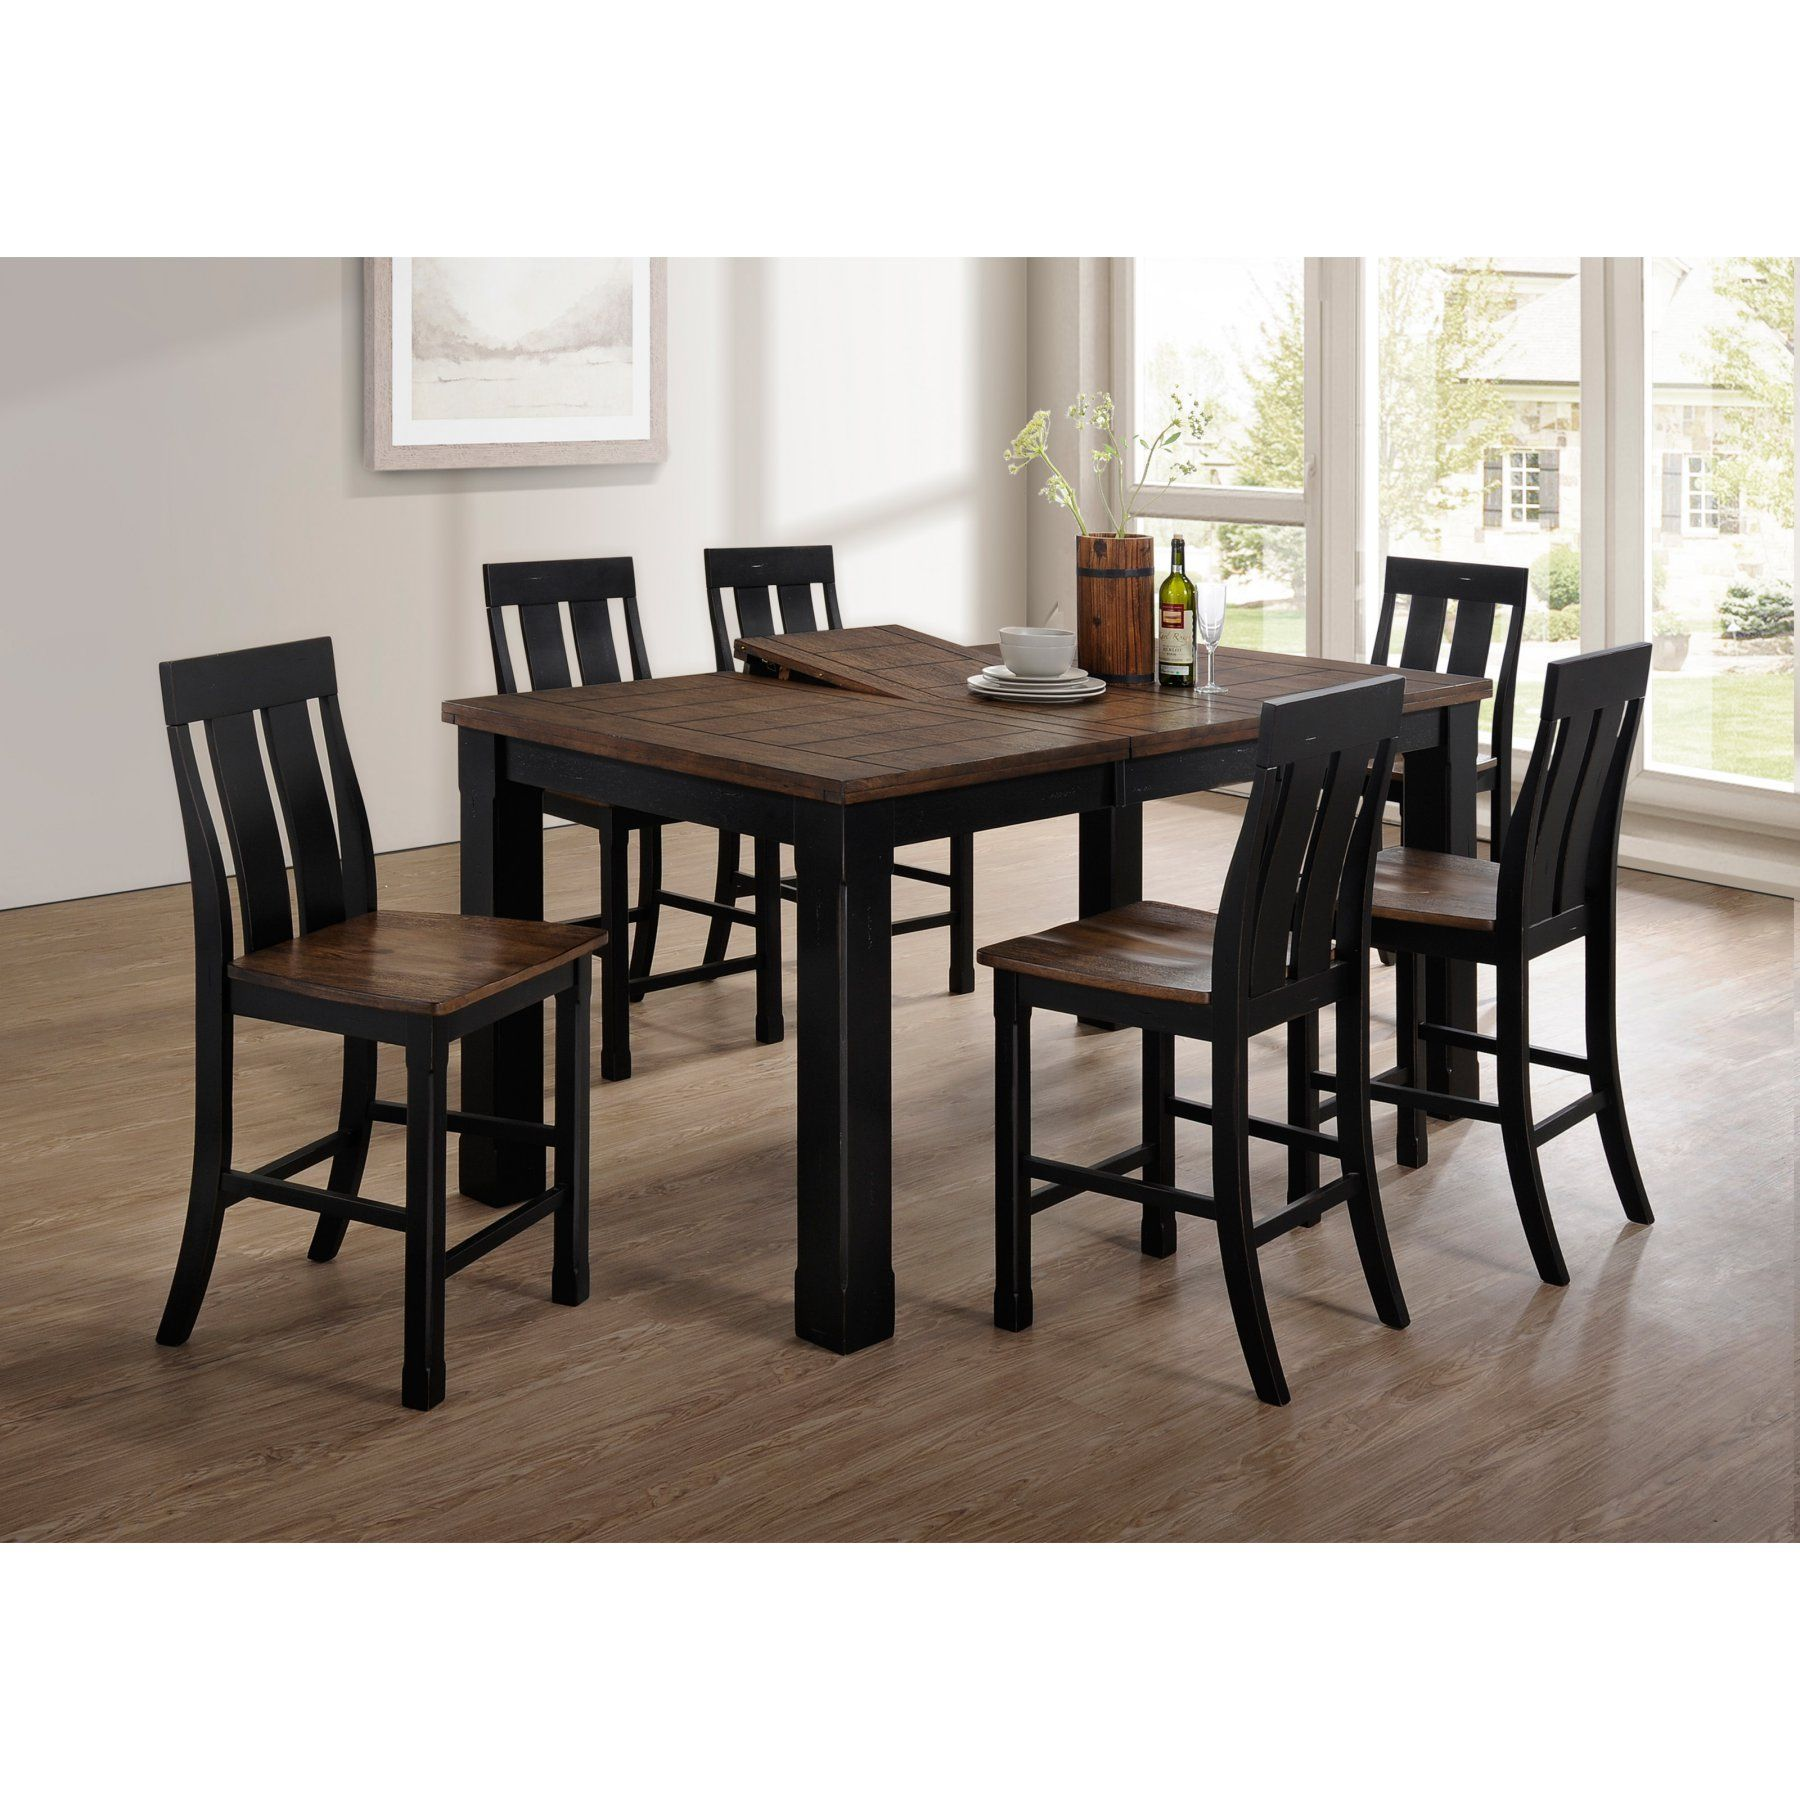 United Furniture Tyler Counter Height Dining Chair